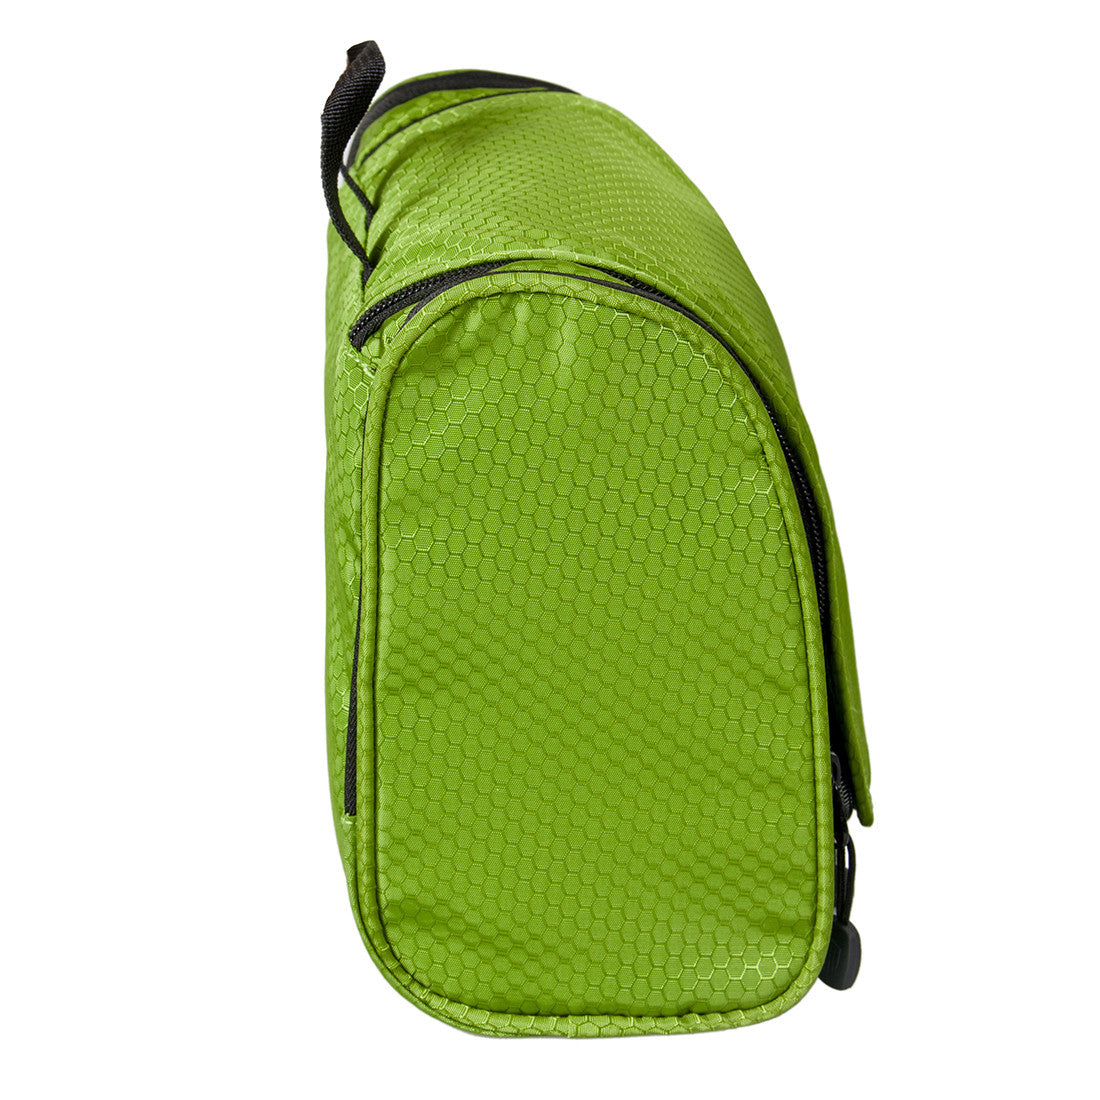 The BAGSMART Medium Hanging Waterproof Toiletry Bag (3 Colors) - I Have Wanderlust